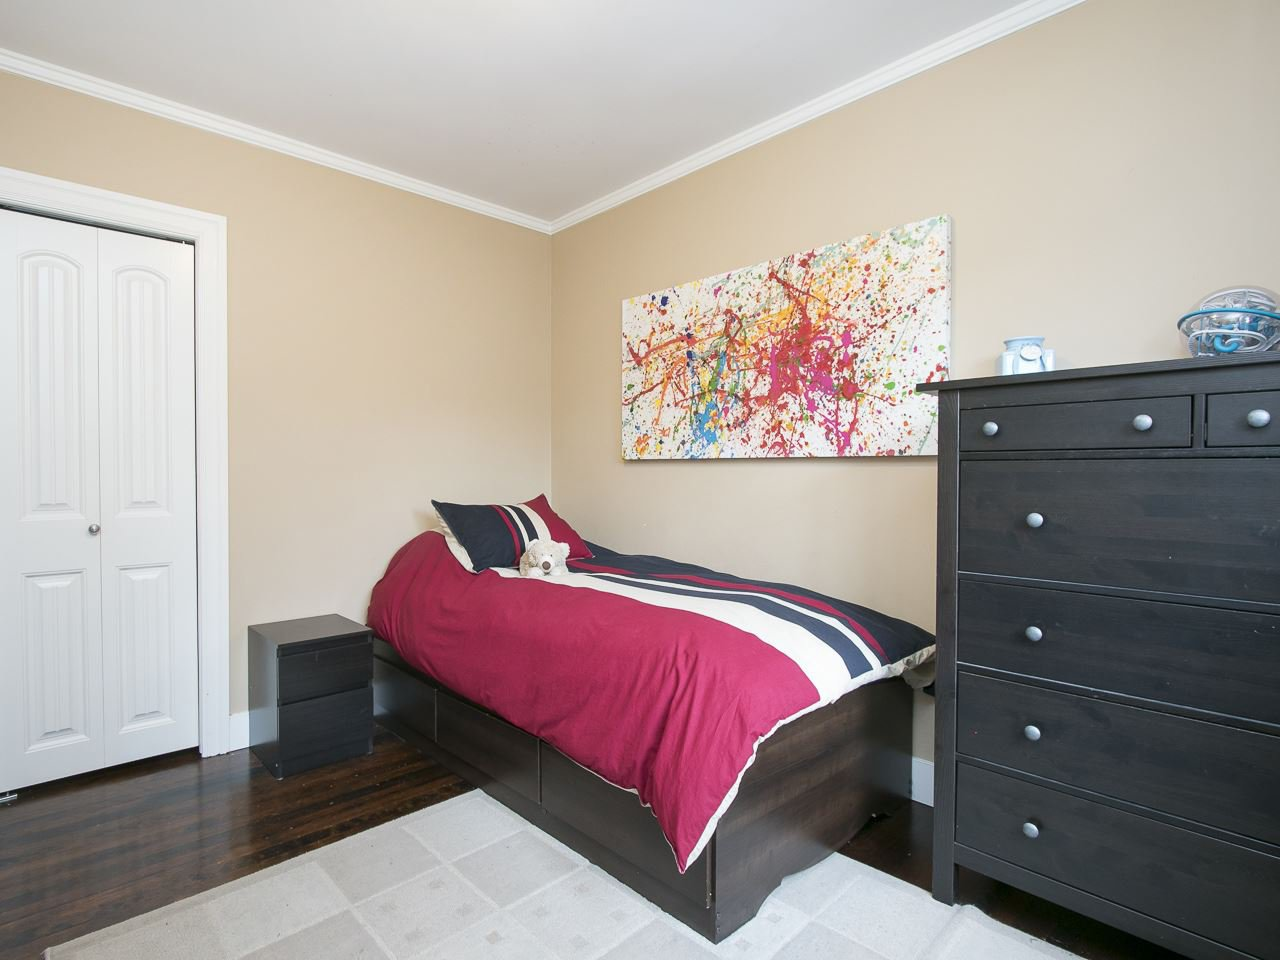 Photo 16: Photos: 731 W KING EDWARD AVENUE in Vancouver: Cambie House for sale (Vancouver West)  : MLS®# R2204992